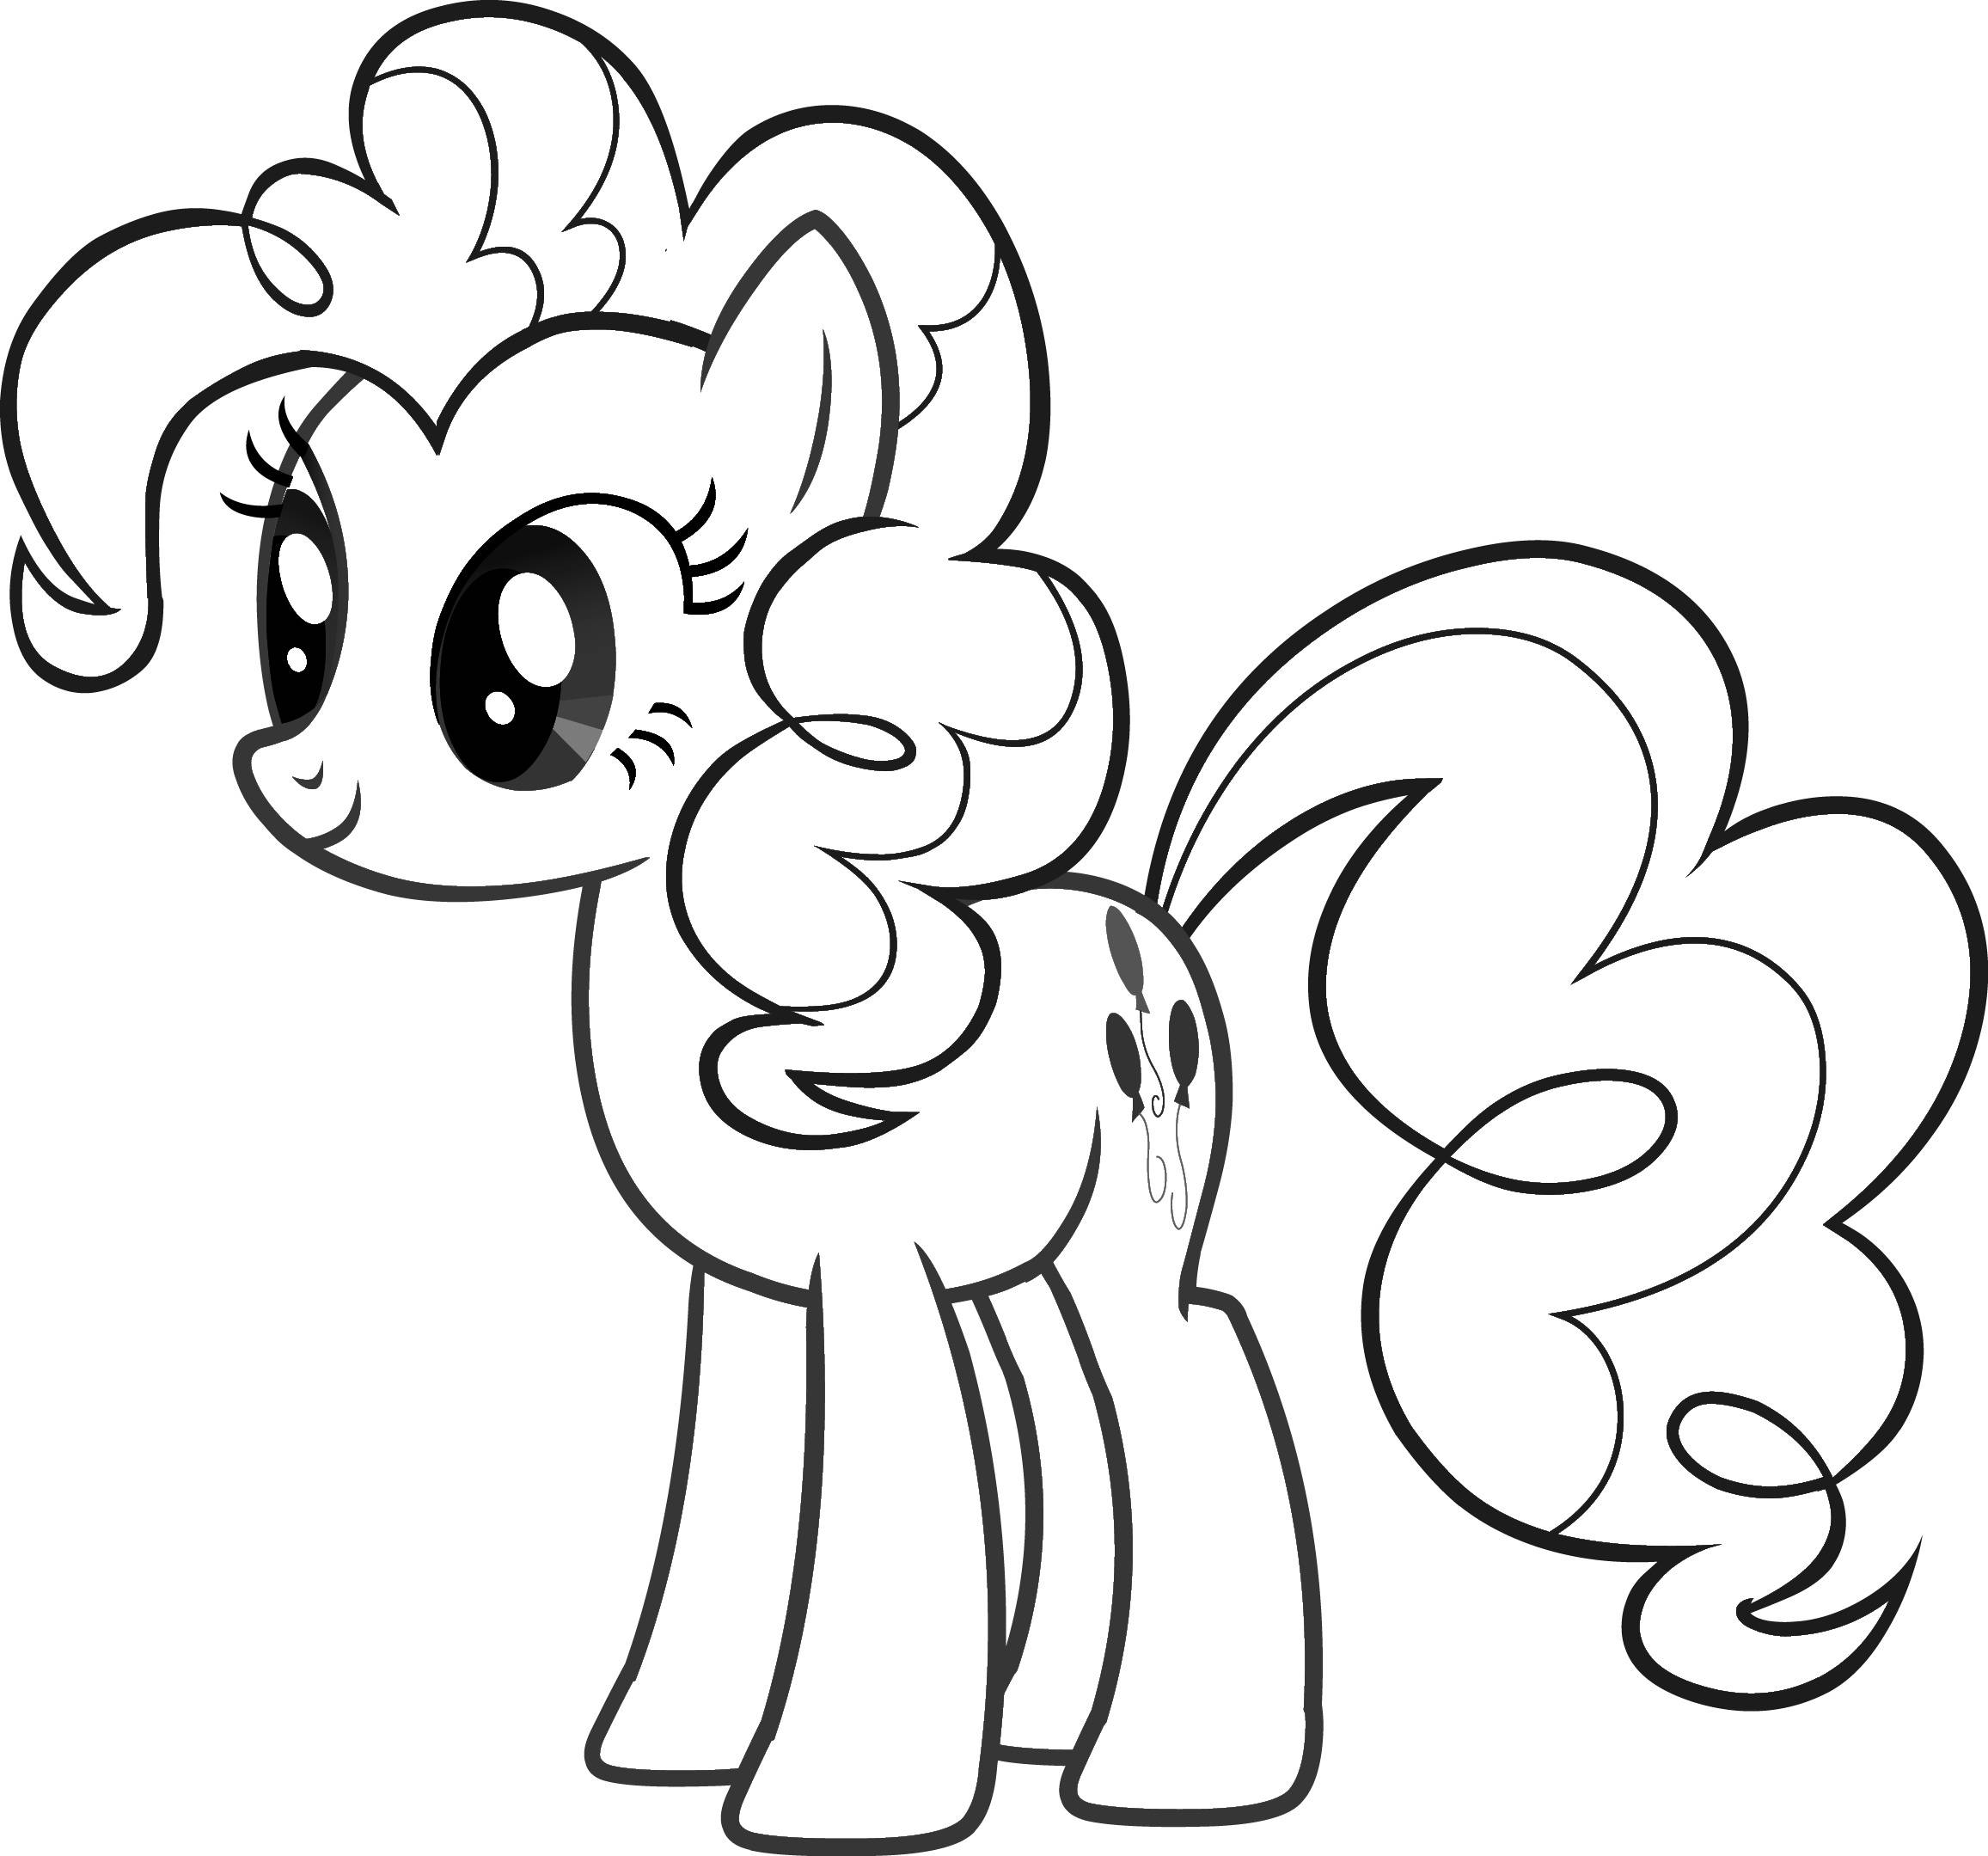 Free Printable My Little Pony Coloring Pages For Kids Www Free Coloring Sheets